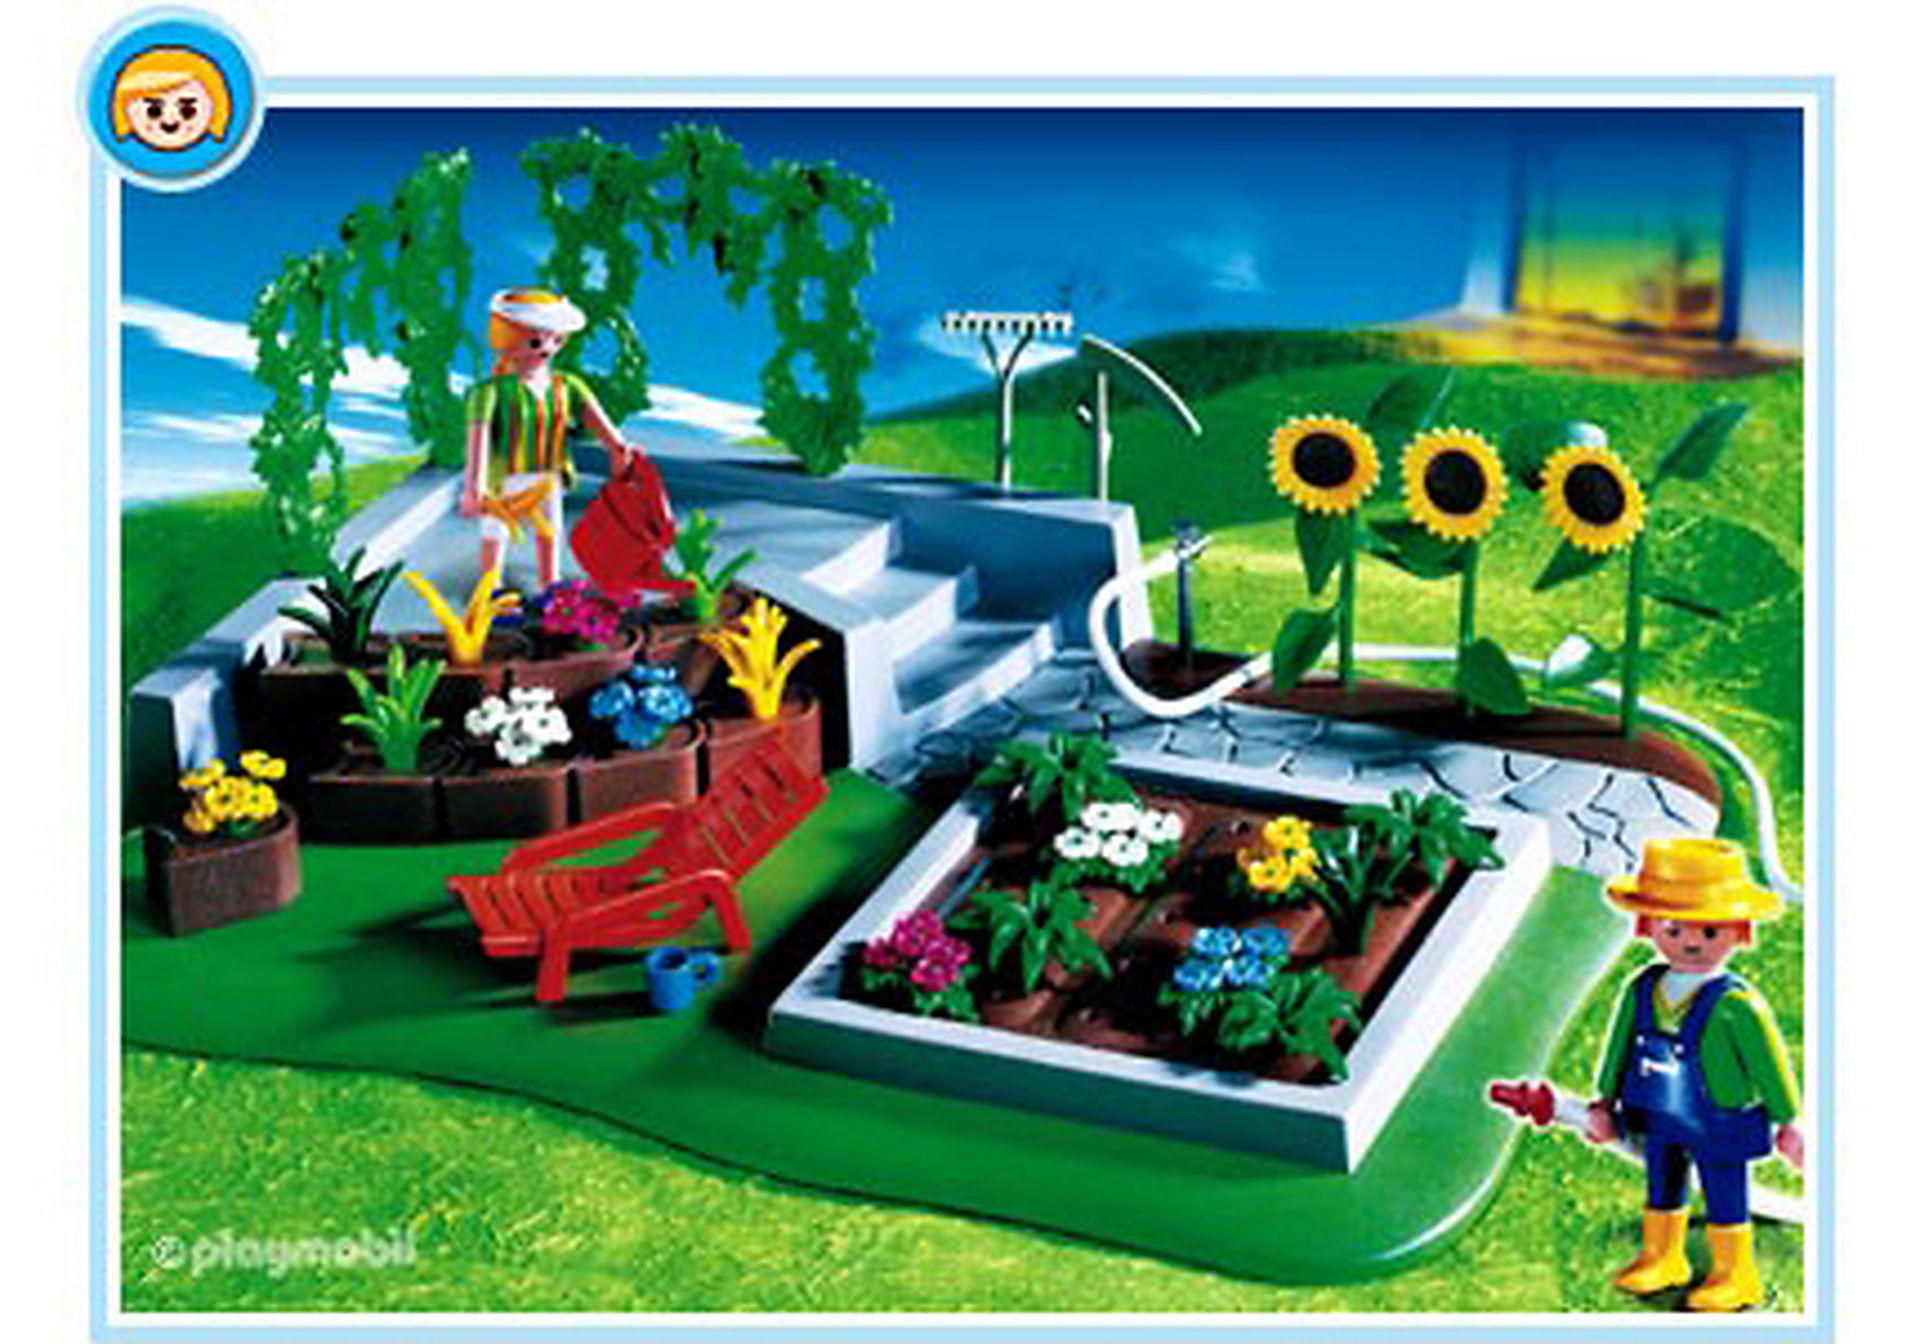 http://media.playmobil.com/i/playmobil/3134-B_product_detail/Superset Blumengarten